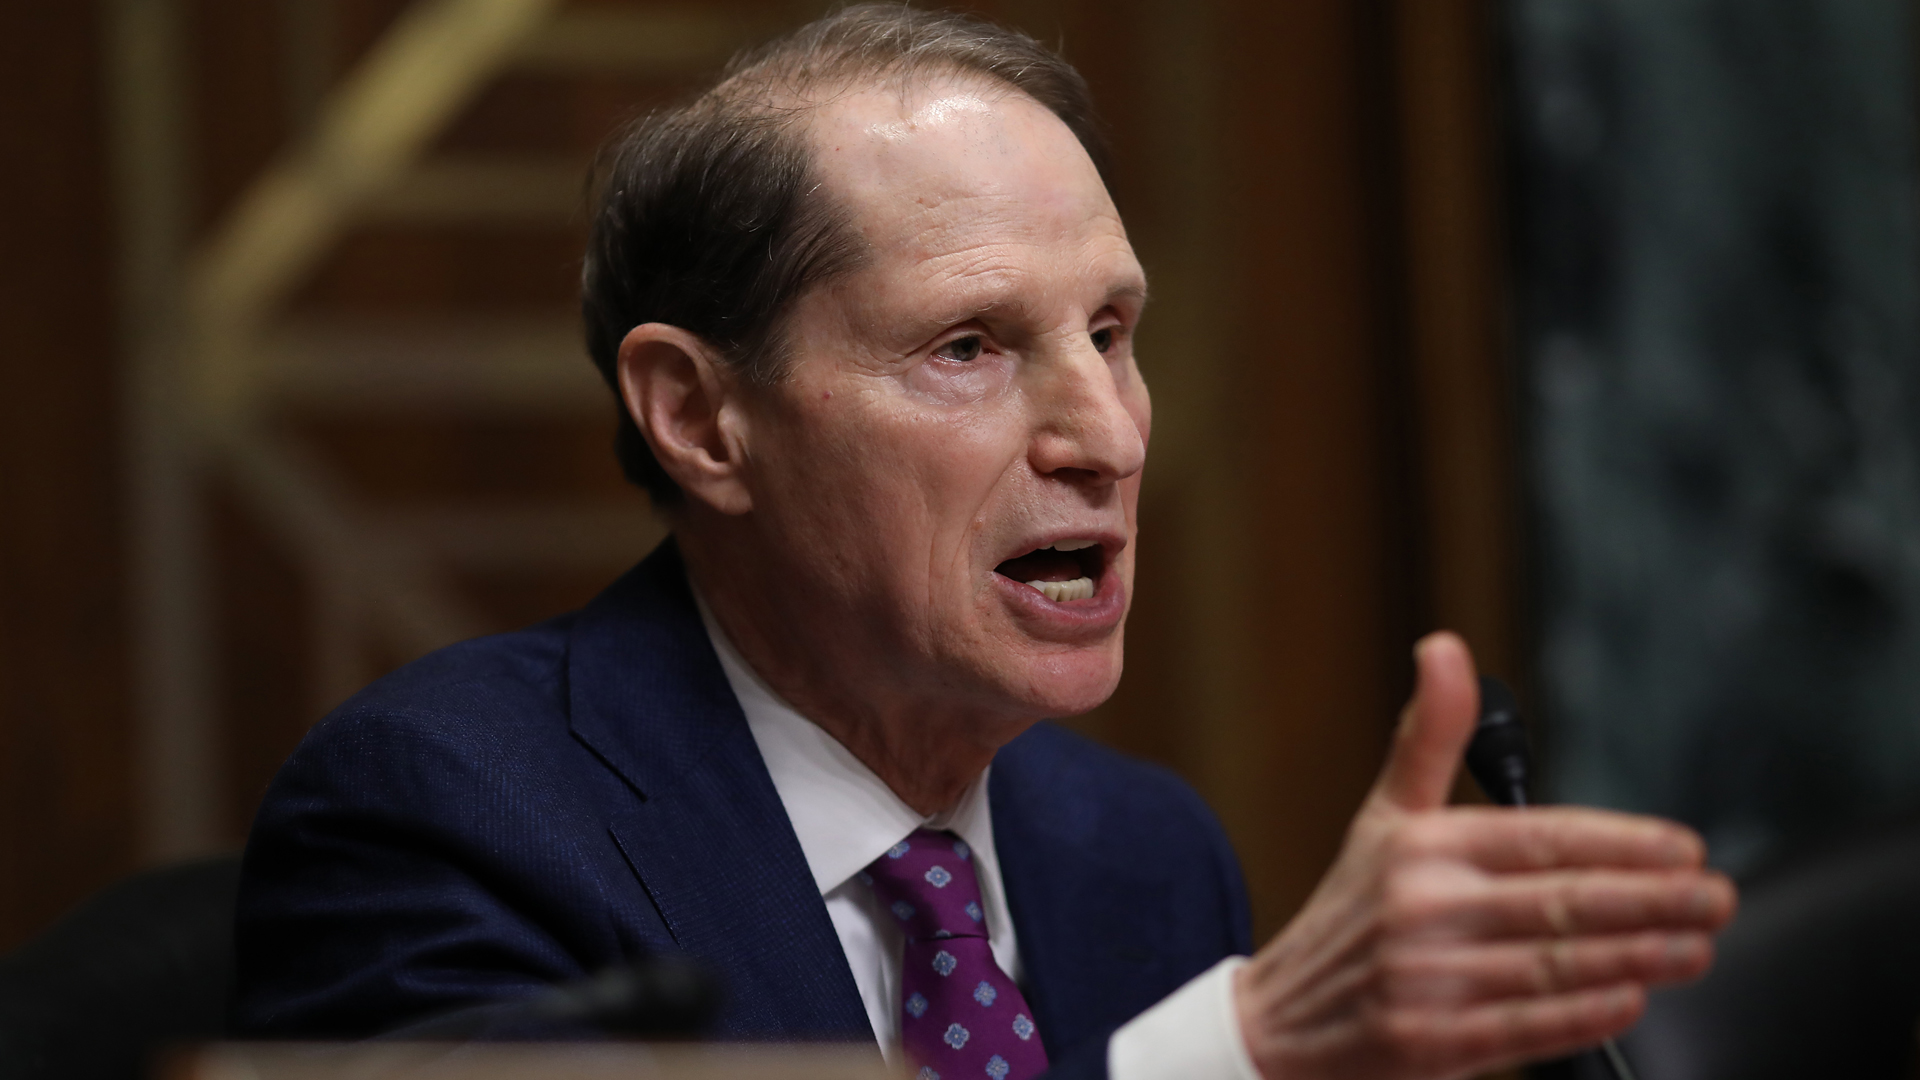 Sen. Ron Wyden asks questions to a panel of pharmaceutical company CEOs during a hearing held by the Senate Finance Committee on Feb. 26, 2019, in Washington, D.C. (Credit: Win McNamee/Getty Images)